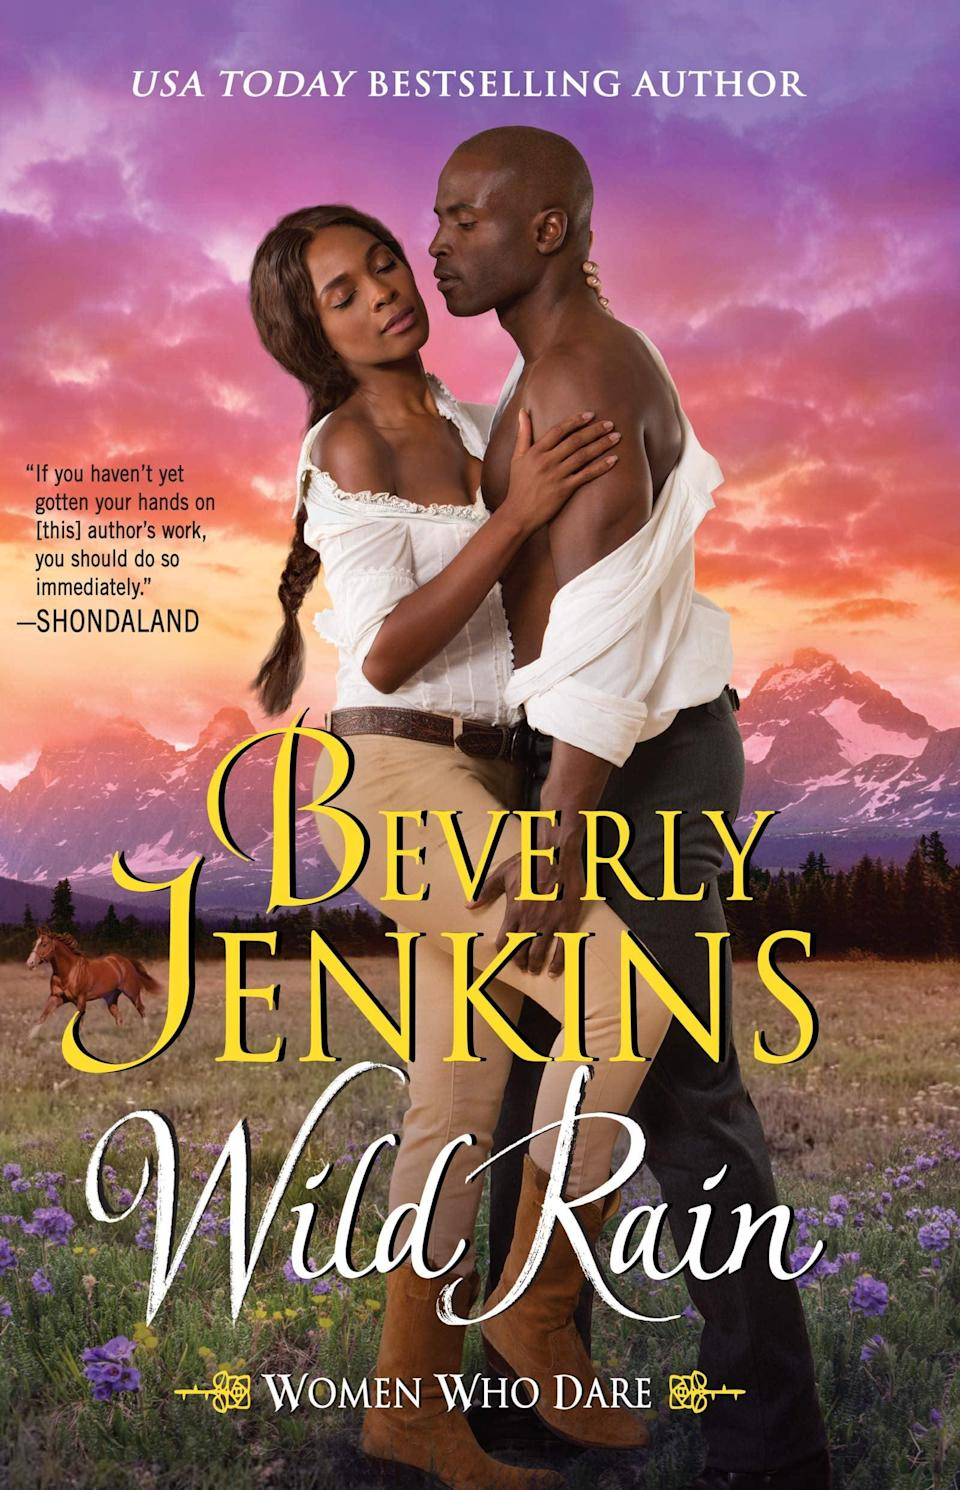 <p>Beverly Jenkins's <strong>Women Who Dare</strong> series continues with <span><strong>Wild Rain</strong></span>, which tells the story of Spring Lee, a female rancher in the post-Civil War era. Spring is proud to be able to run her ranch without anyone's help, so she's less than welcoming when Garrett McCray, a Washington reporter, arrives to interview her brother and force her to reconsider her stance on love. </p> <p><em>Out Feb. 9</em></p>